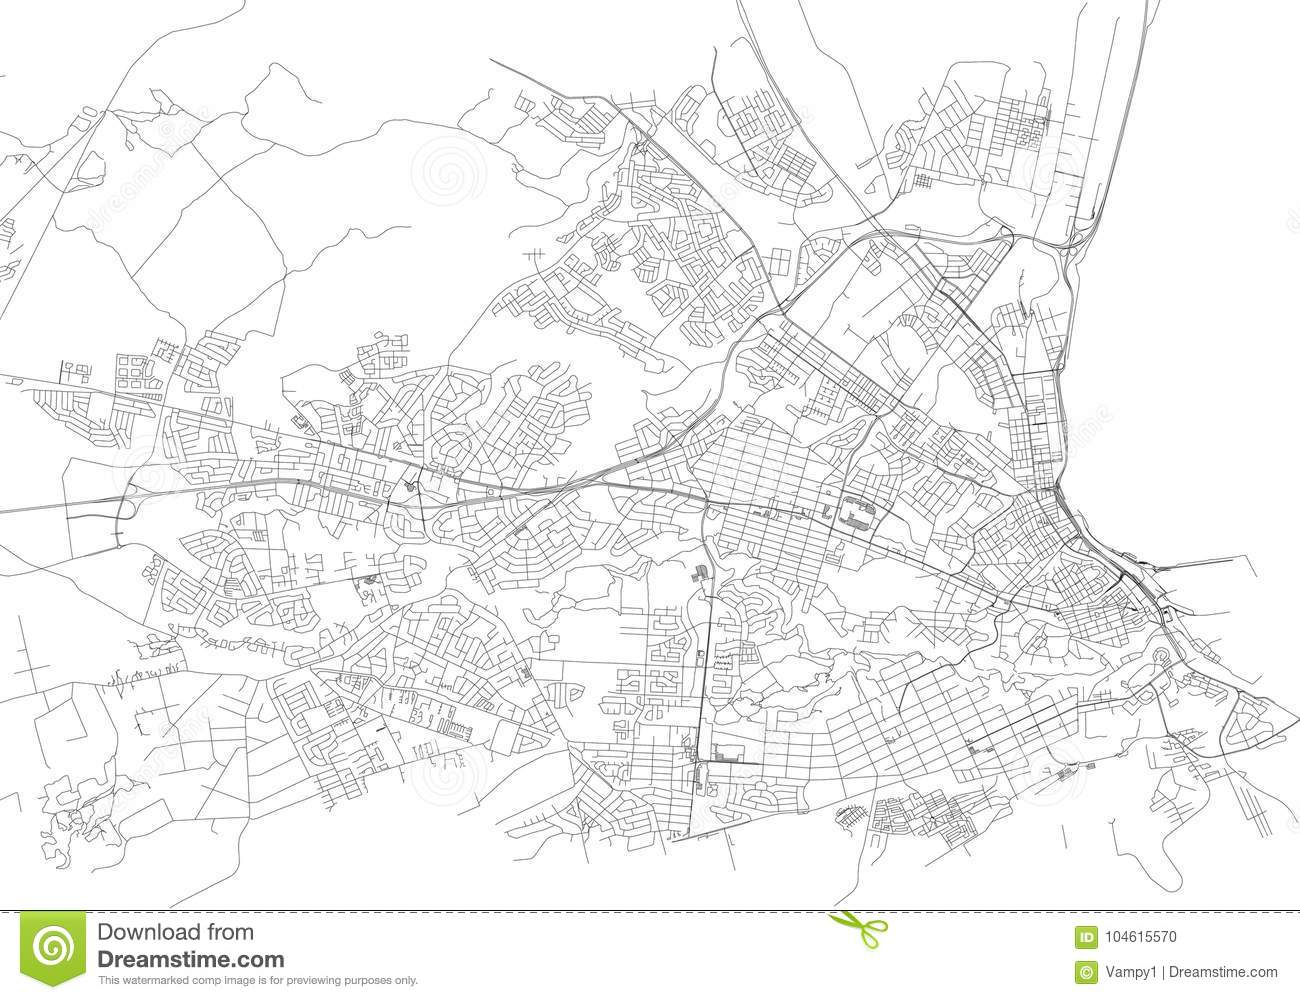 Streets of Port Elizabeth, city map, South Africa